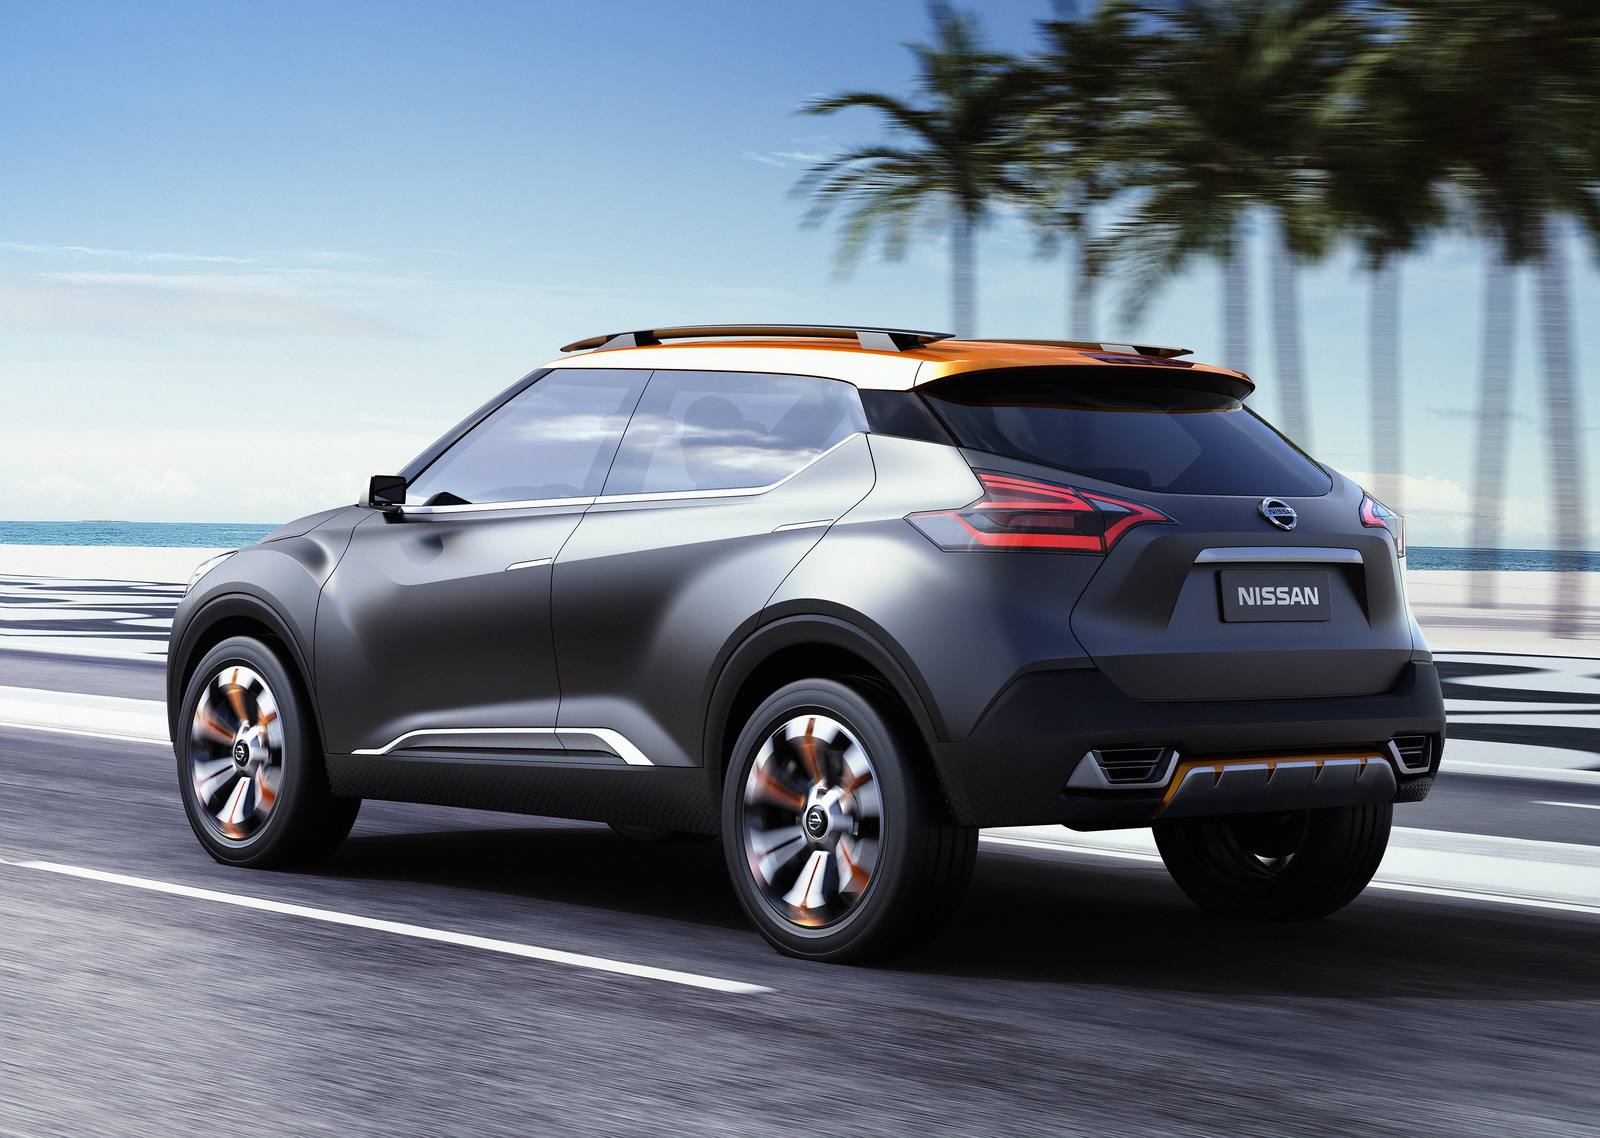 Owners Honda Com >> Nissan Kicks SUV to Debut in 2016 as the Official Car of ...